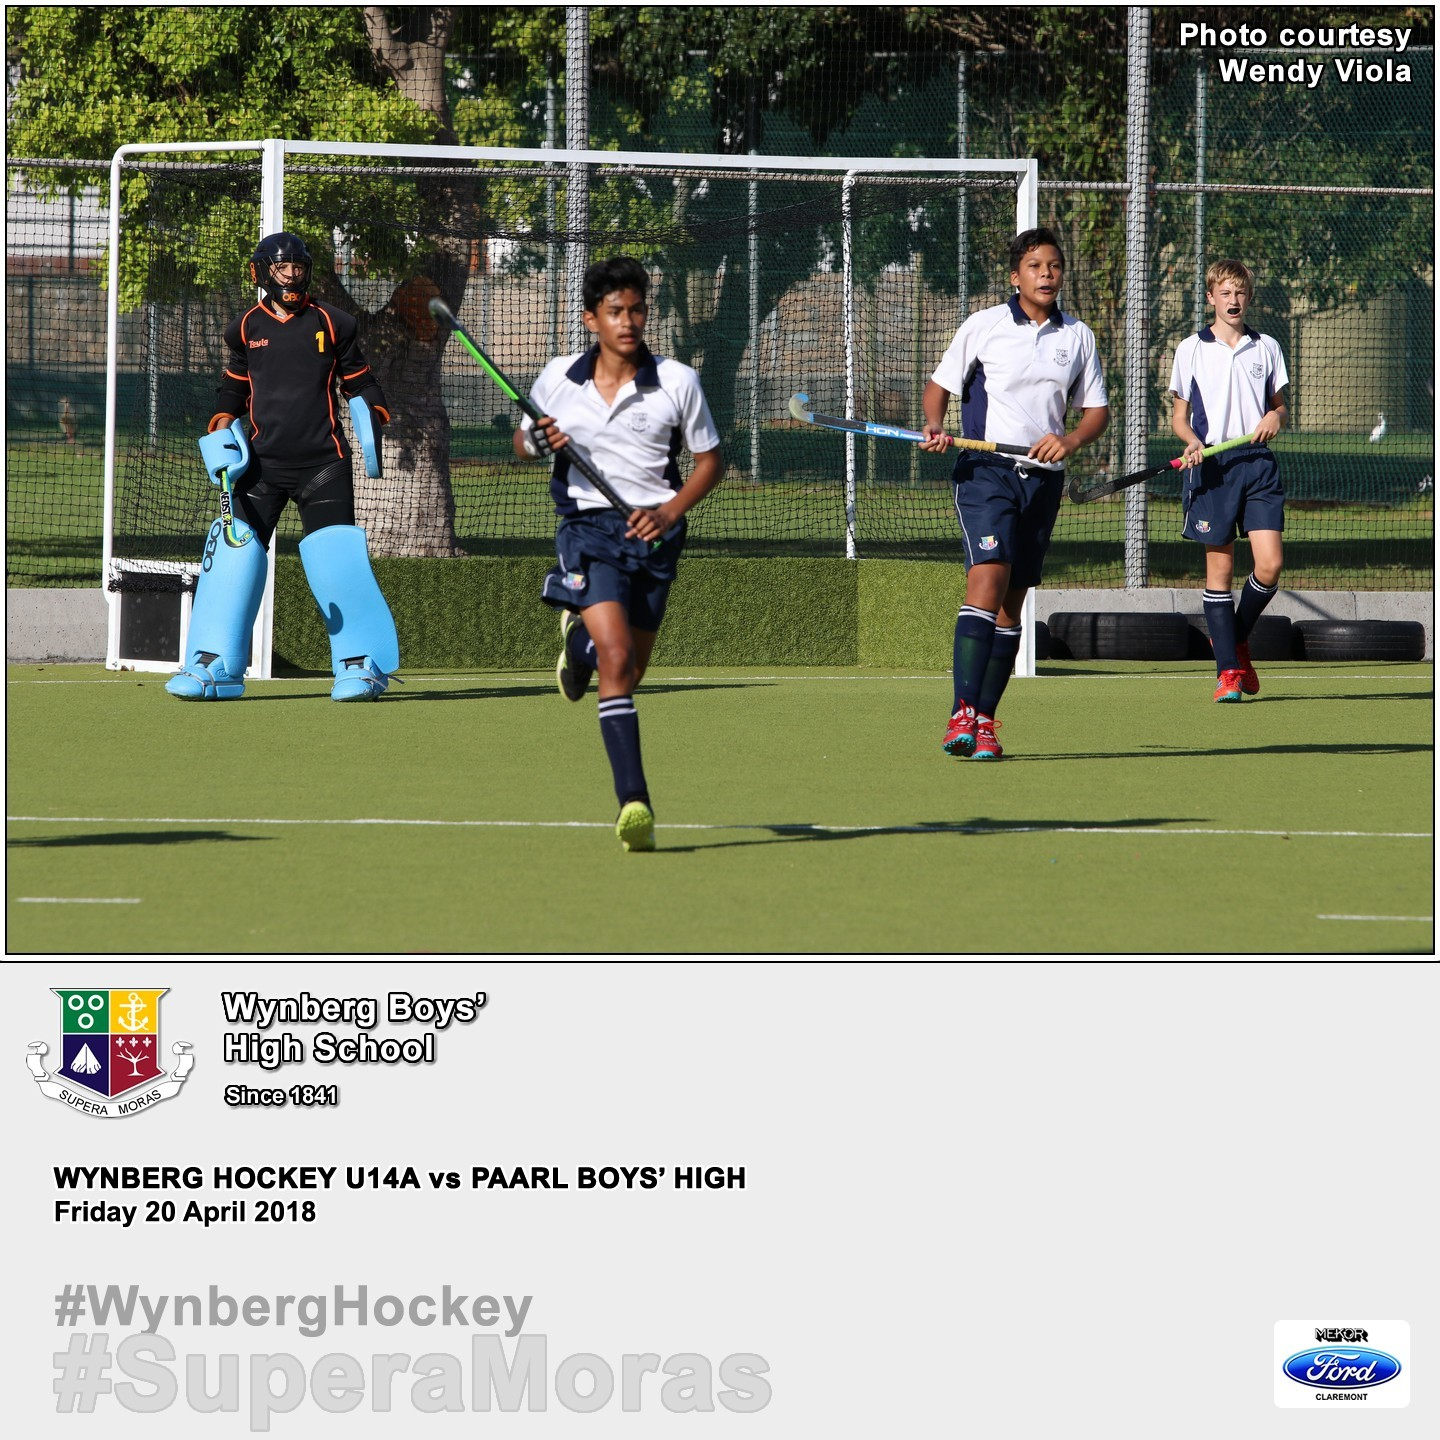 U14A vs Paarl Boys' High, Friday 20 April 2018